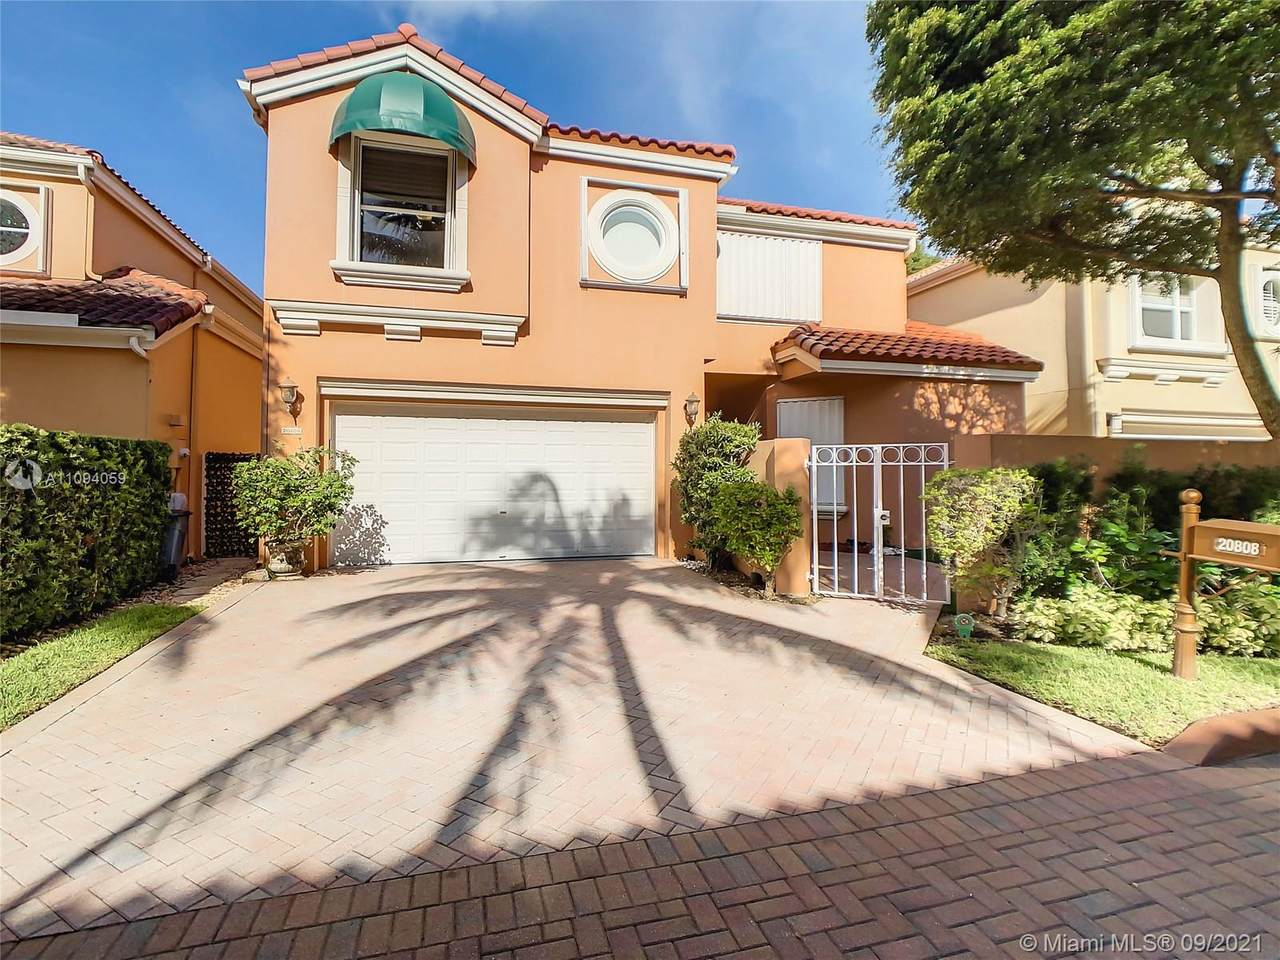 20808 37th Ave - Photo 1